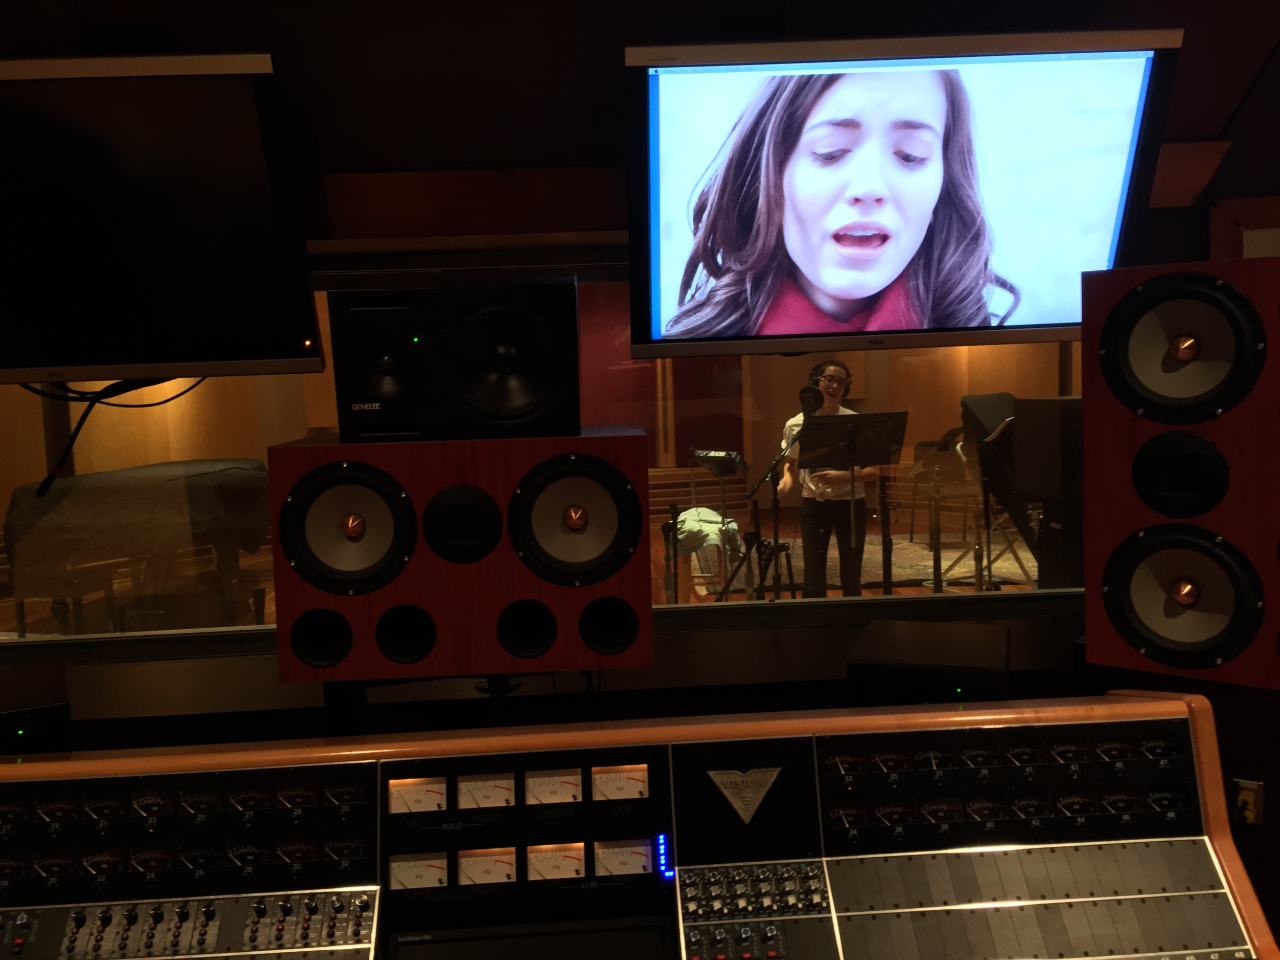 Jacléne Wilk sings along with her moving image in the U-M Duderstadt Center studios.